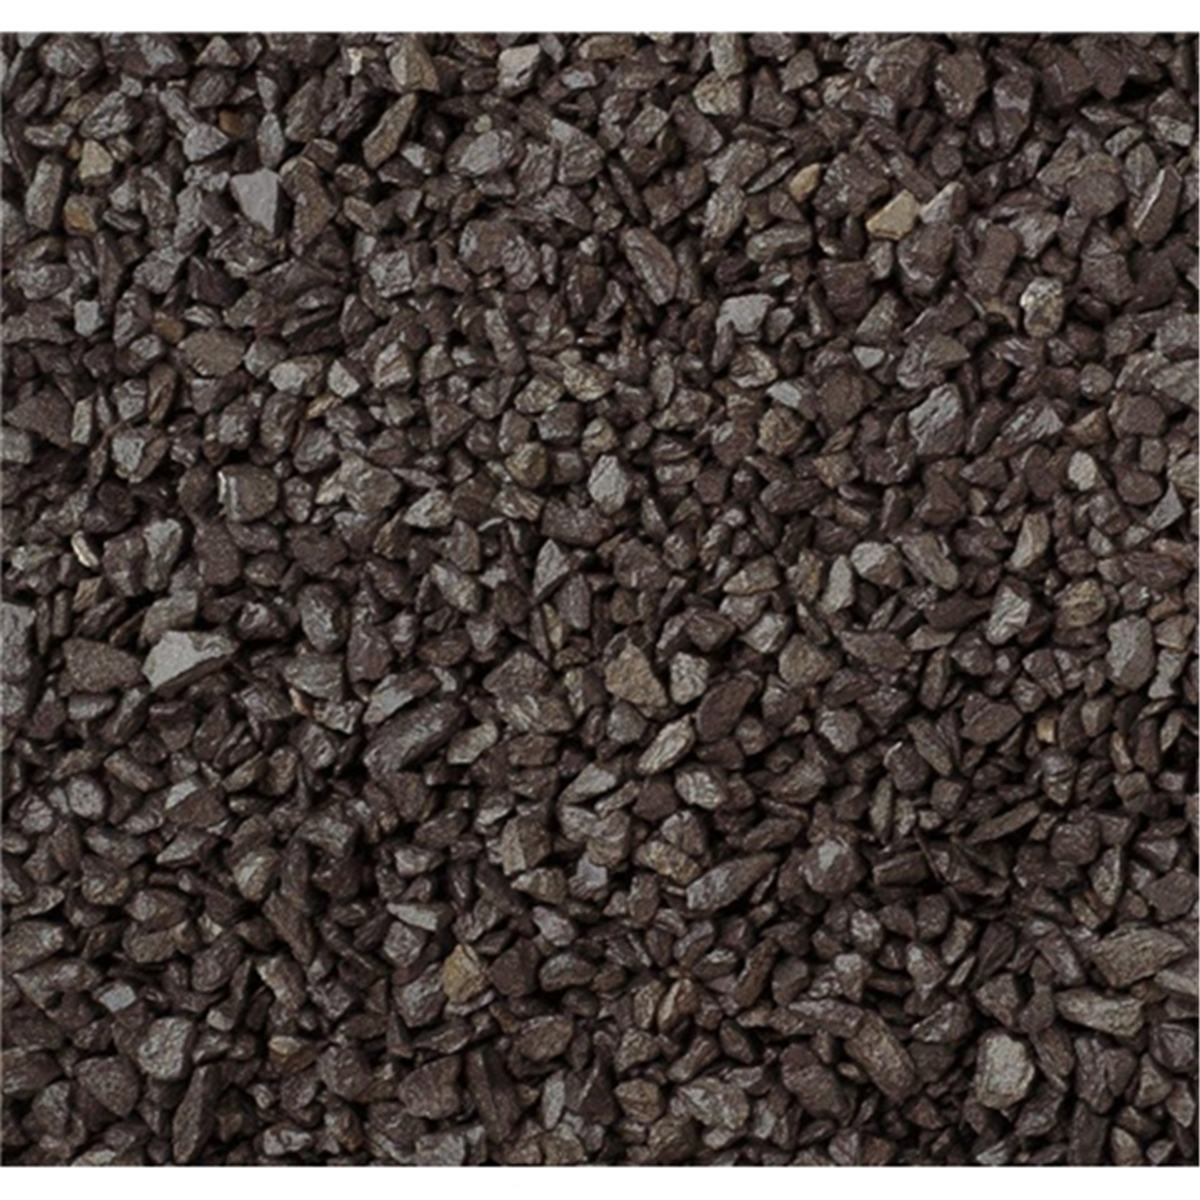 Bulk Bag 850kg Black Chippings Gravel (*please Note When